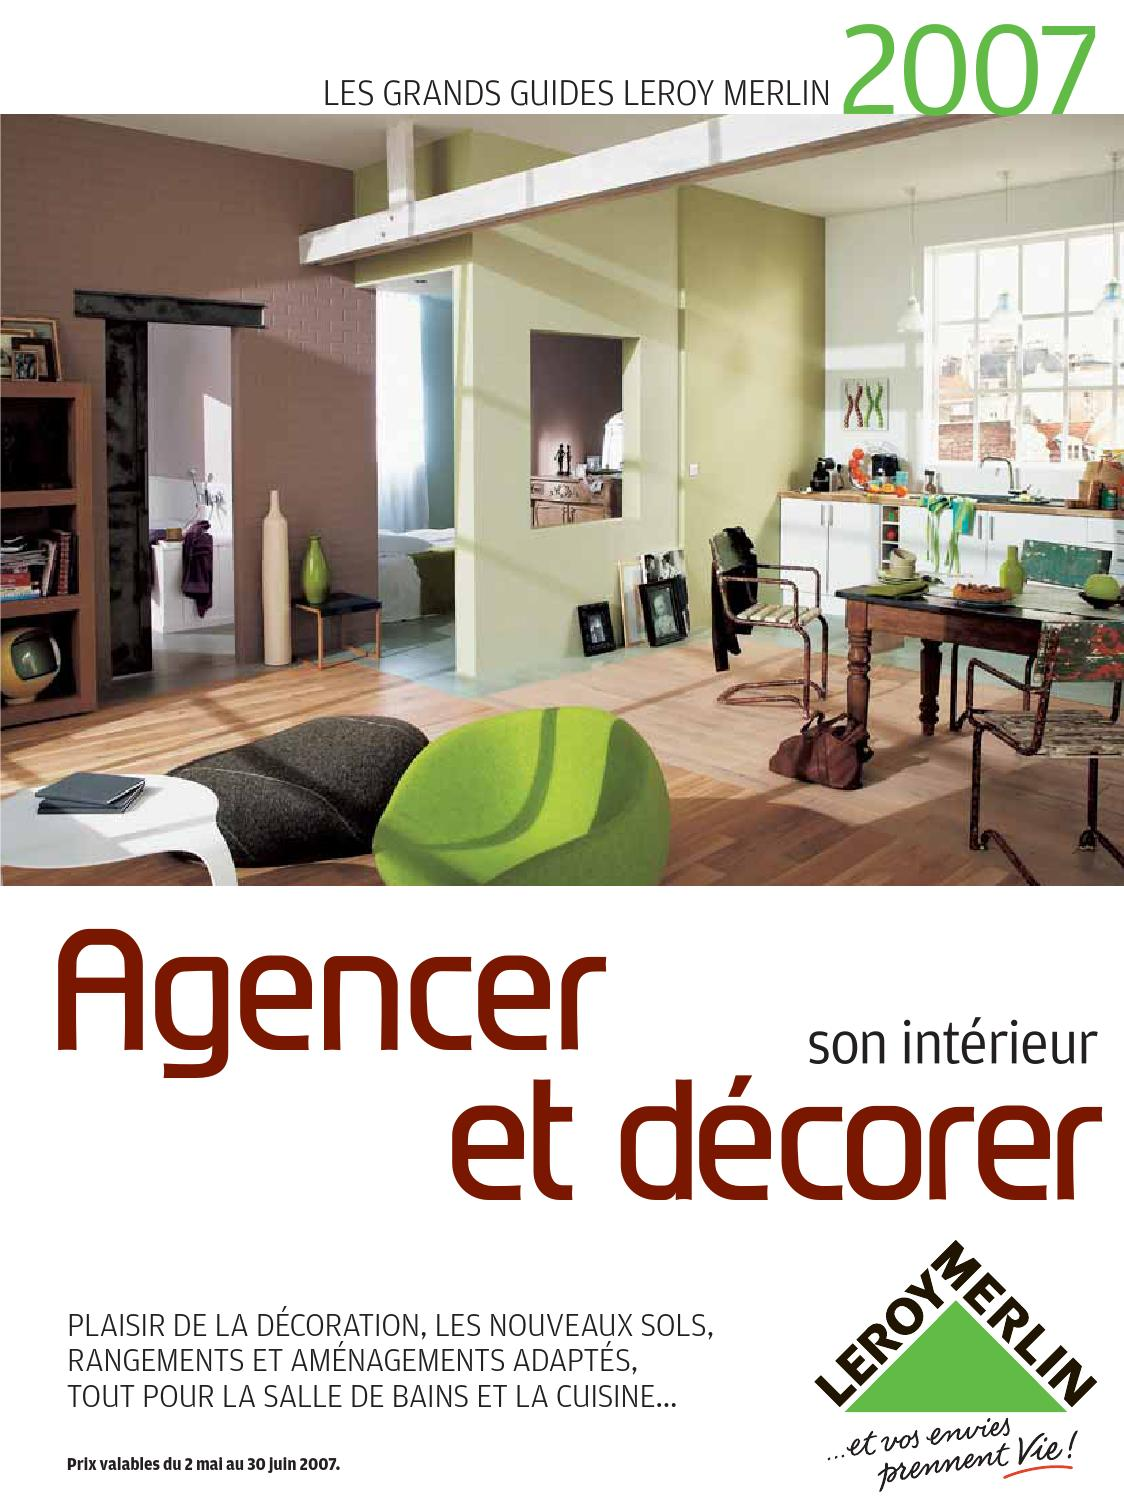 Leroy Merlin Evacuation Lavabo agencer et decorer son interieur l mnabila hb - issuu